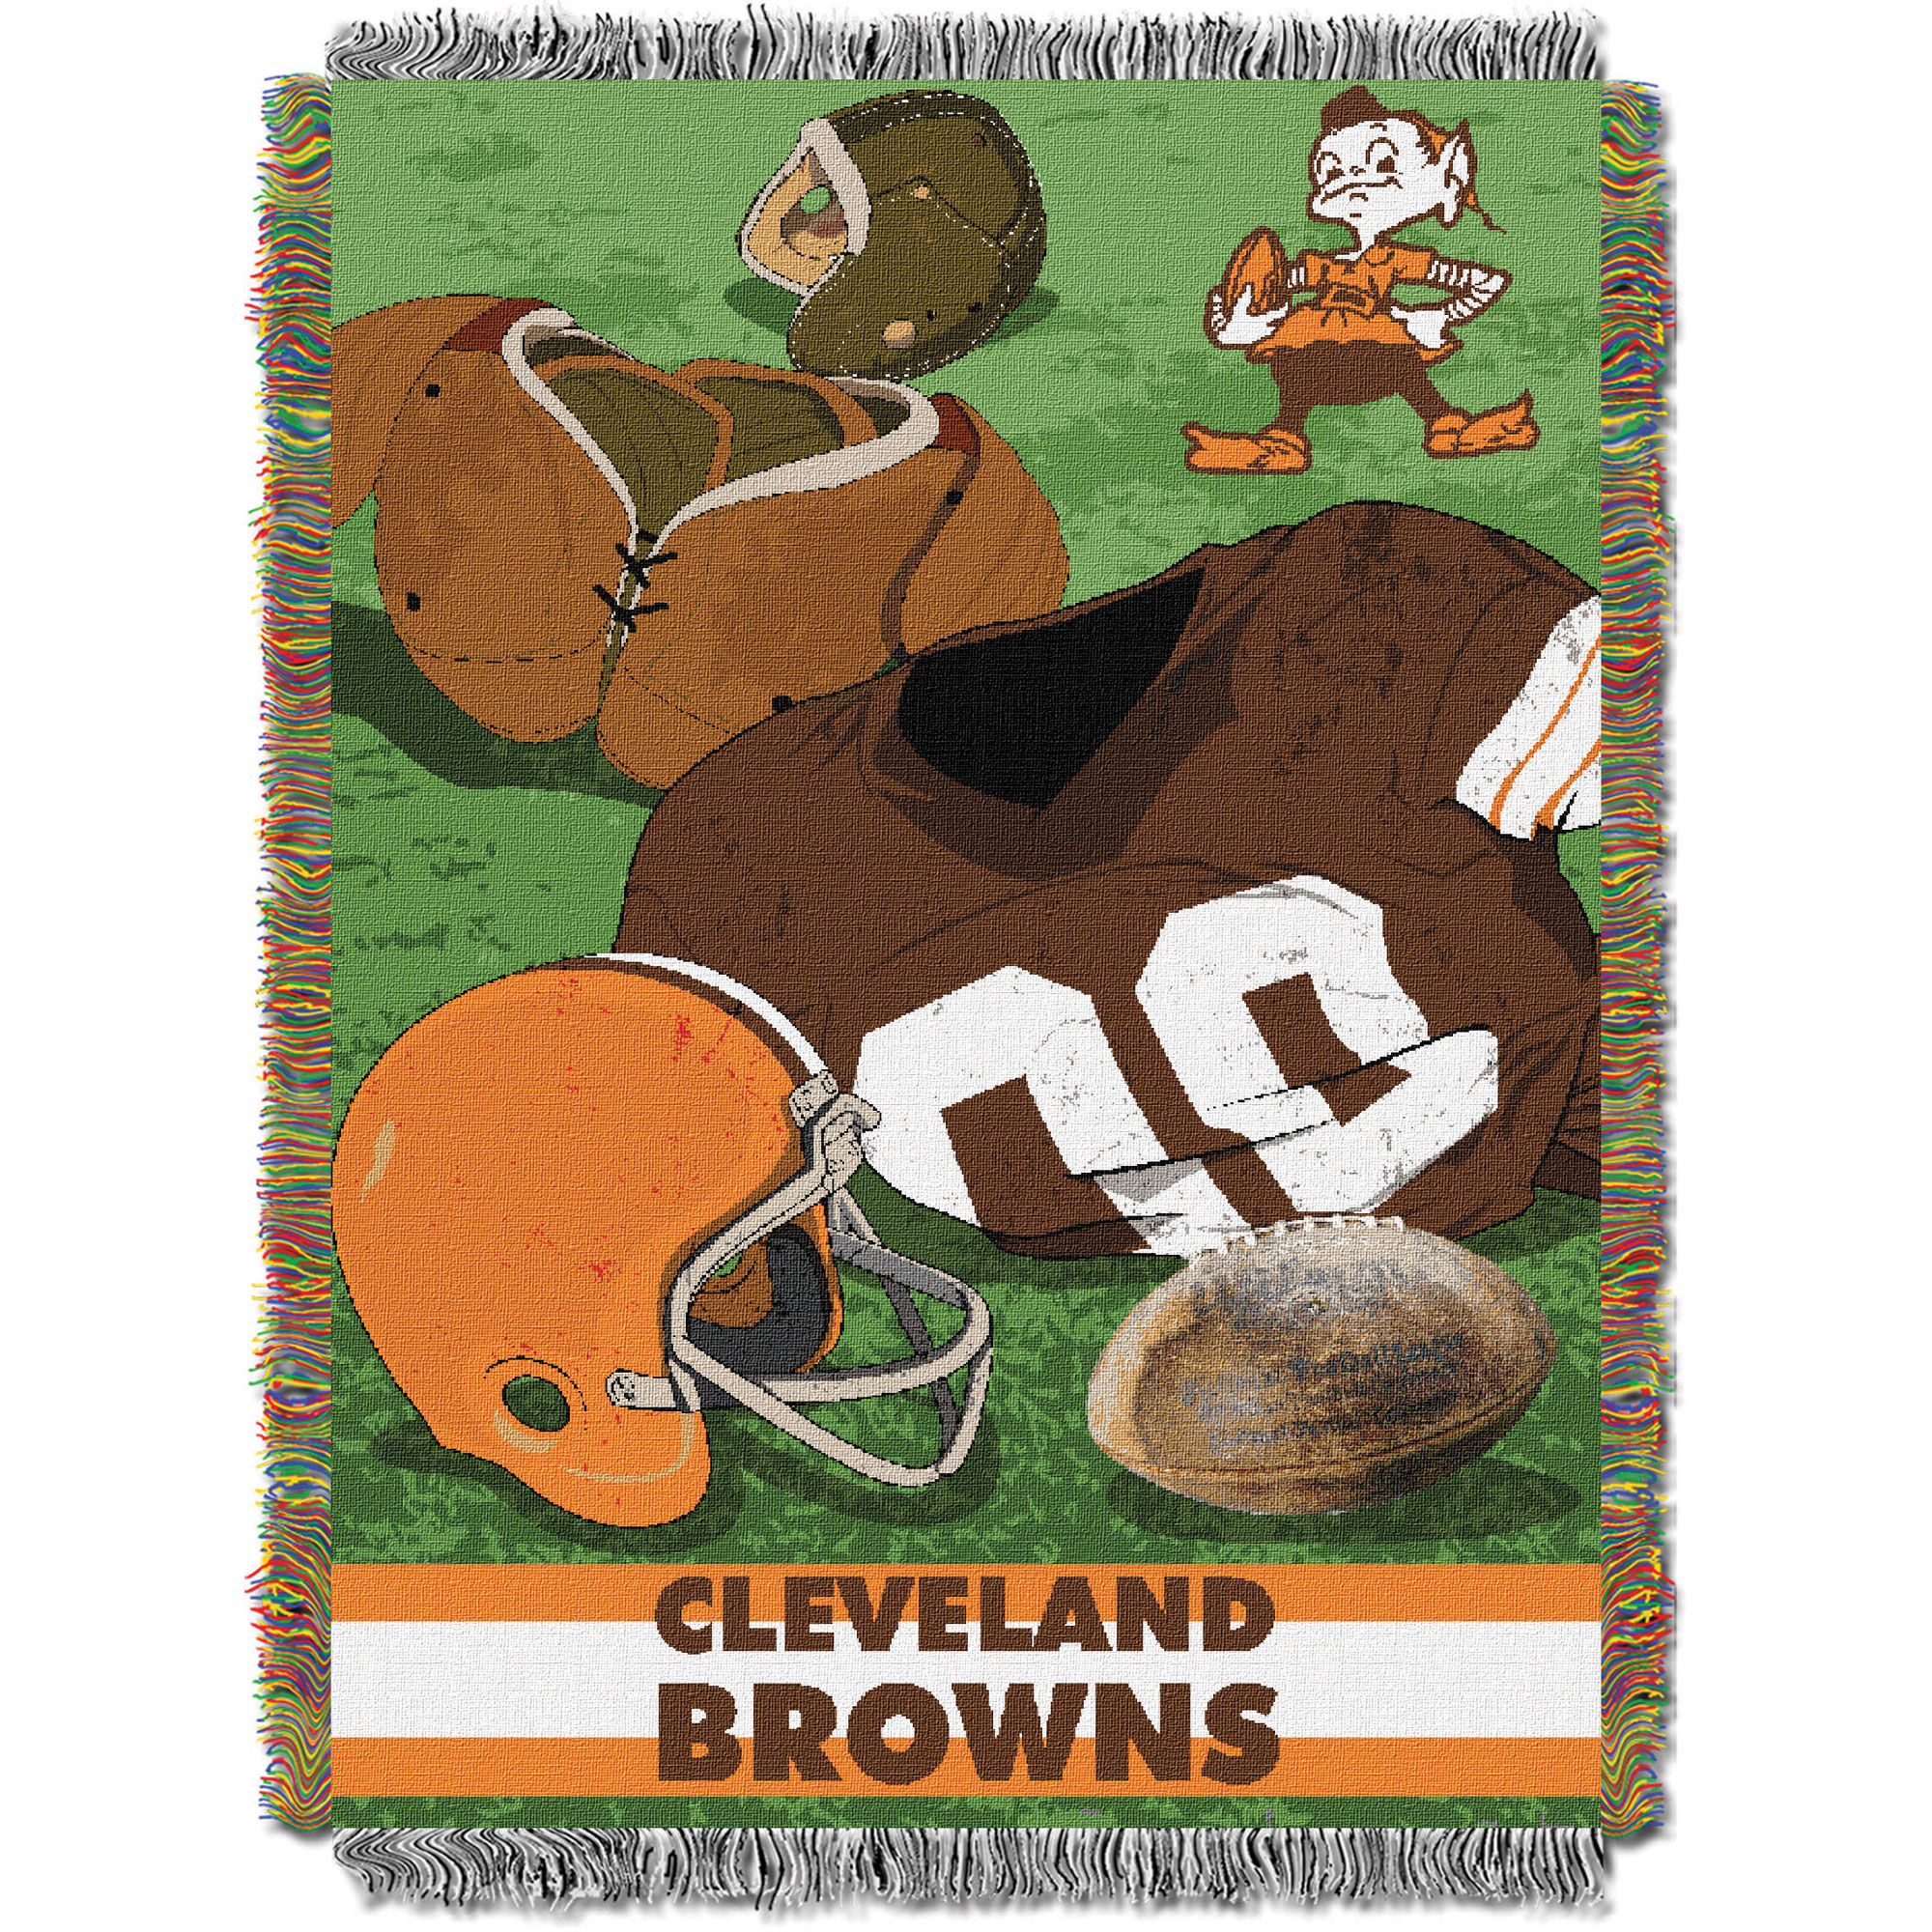 Cleveland Browns The Northwest Company 48'' x 60'' Vintage Woven Tapestry Throw - No Size